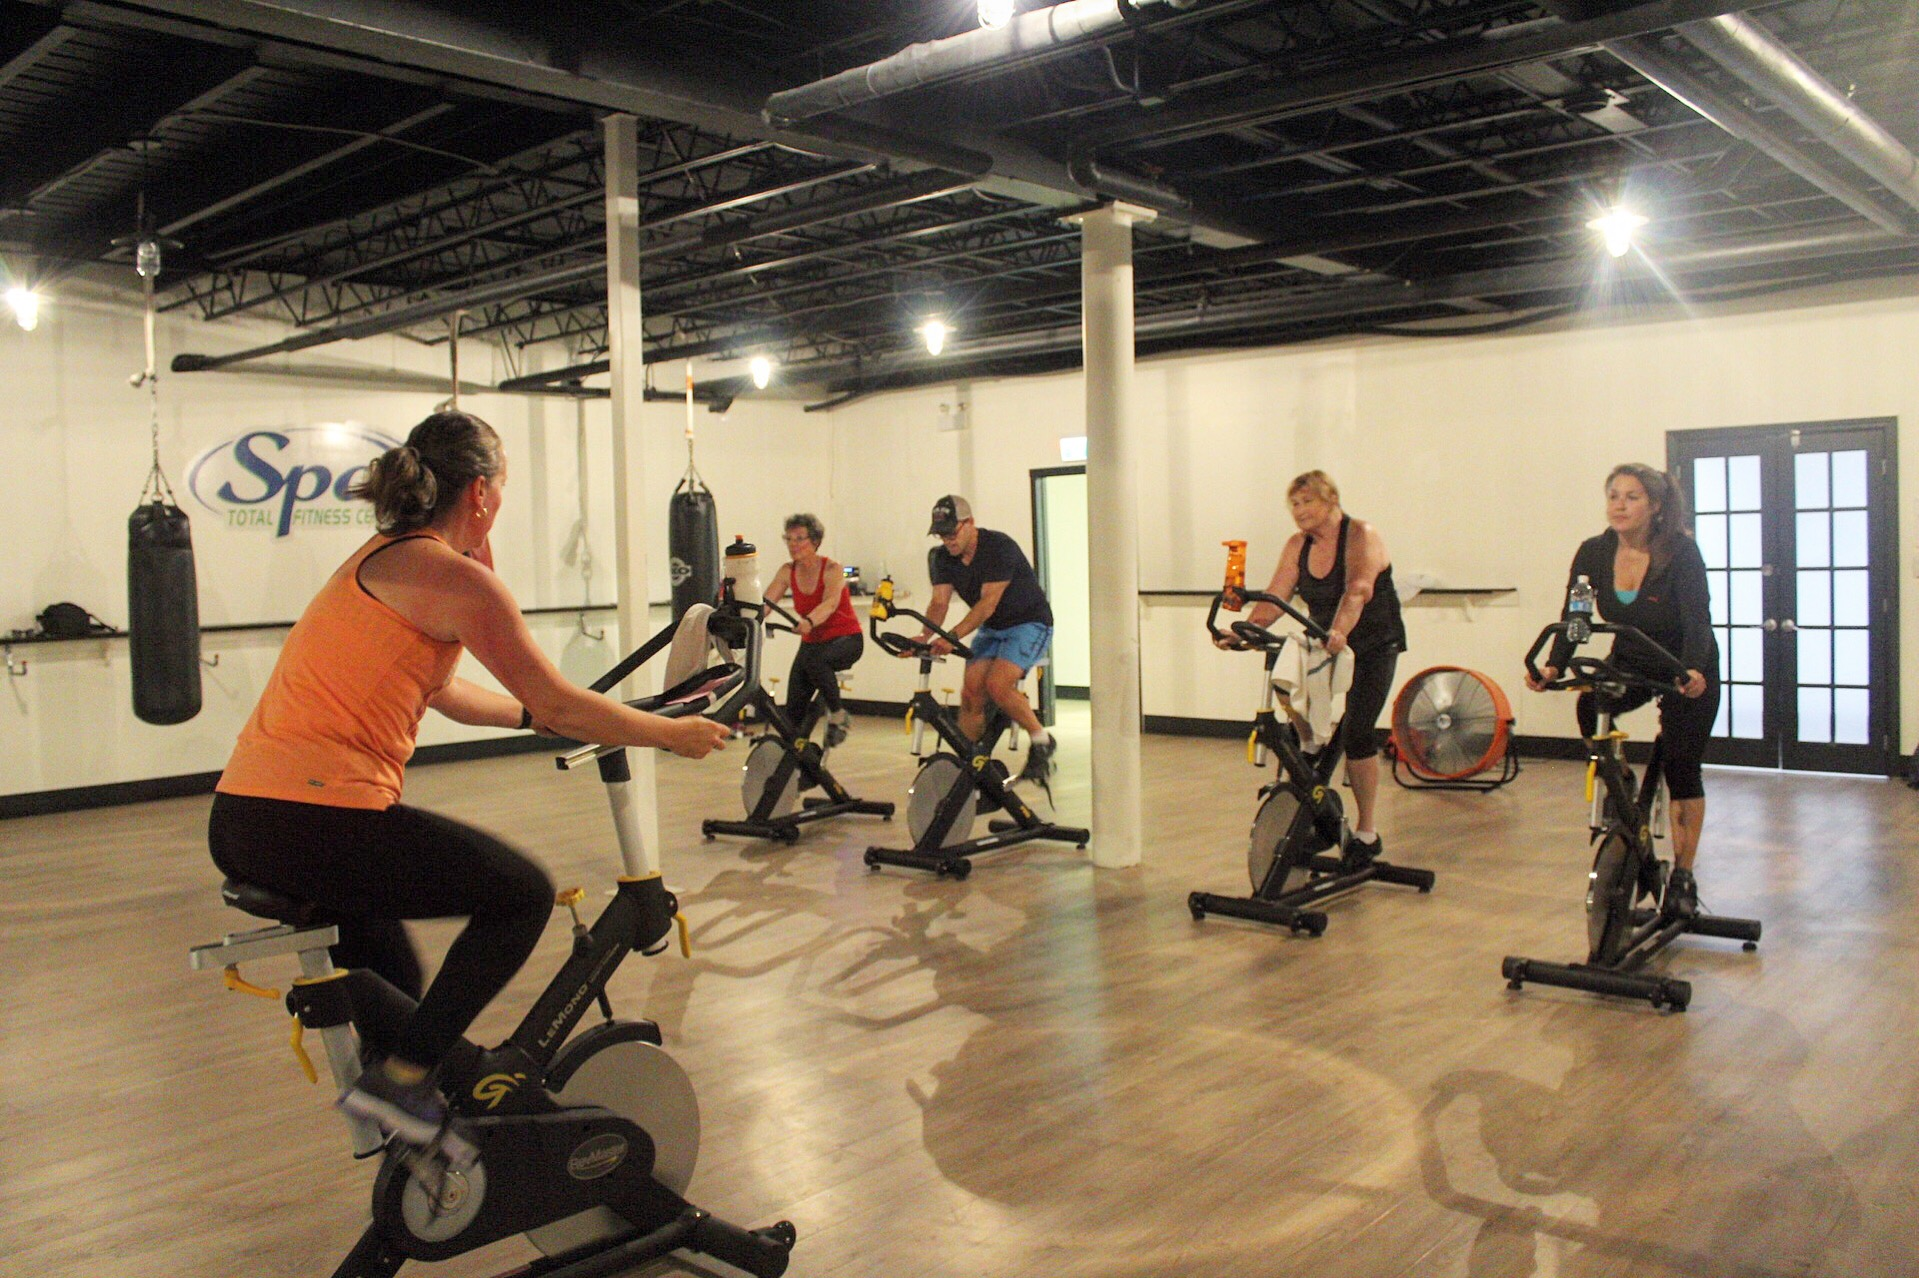 GROUP CLASSES | Spa Total Fitness / Circuit Training / HIIT / Indoor